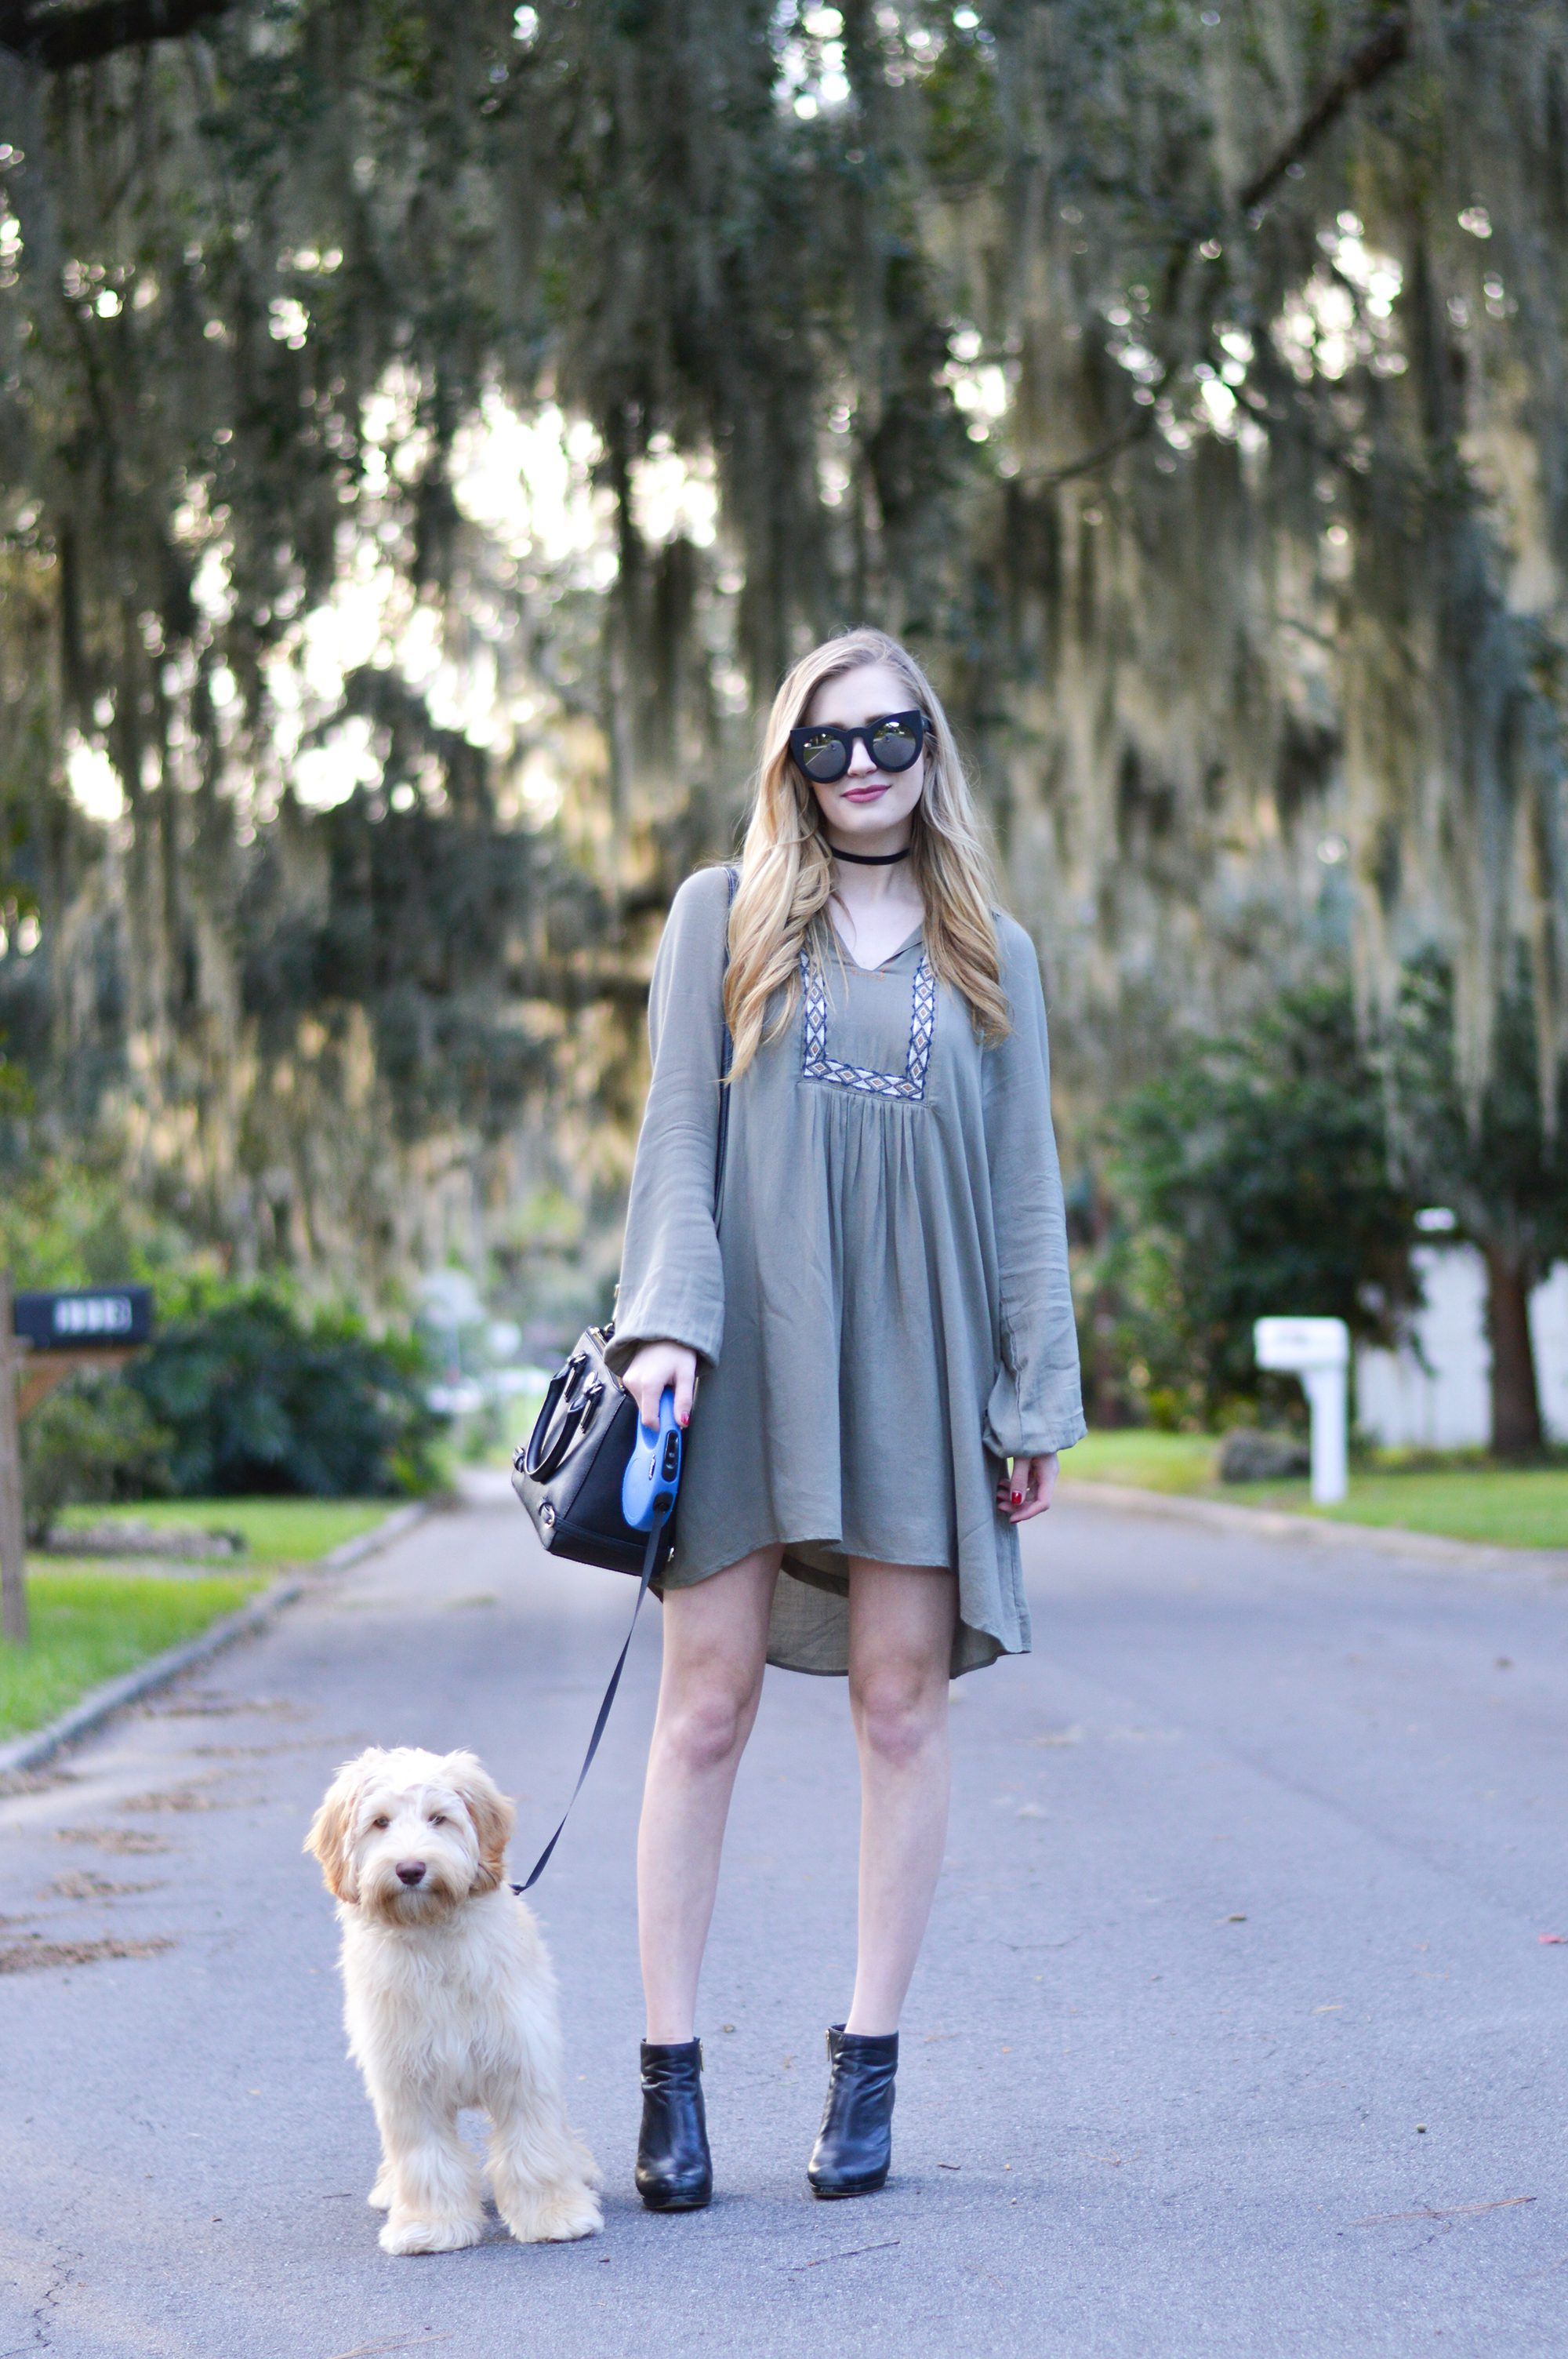 styelled-blog-sweater-weather-olive-labradoodle-fall-style-fashion-blogger-ootd-booties-dress-october-02